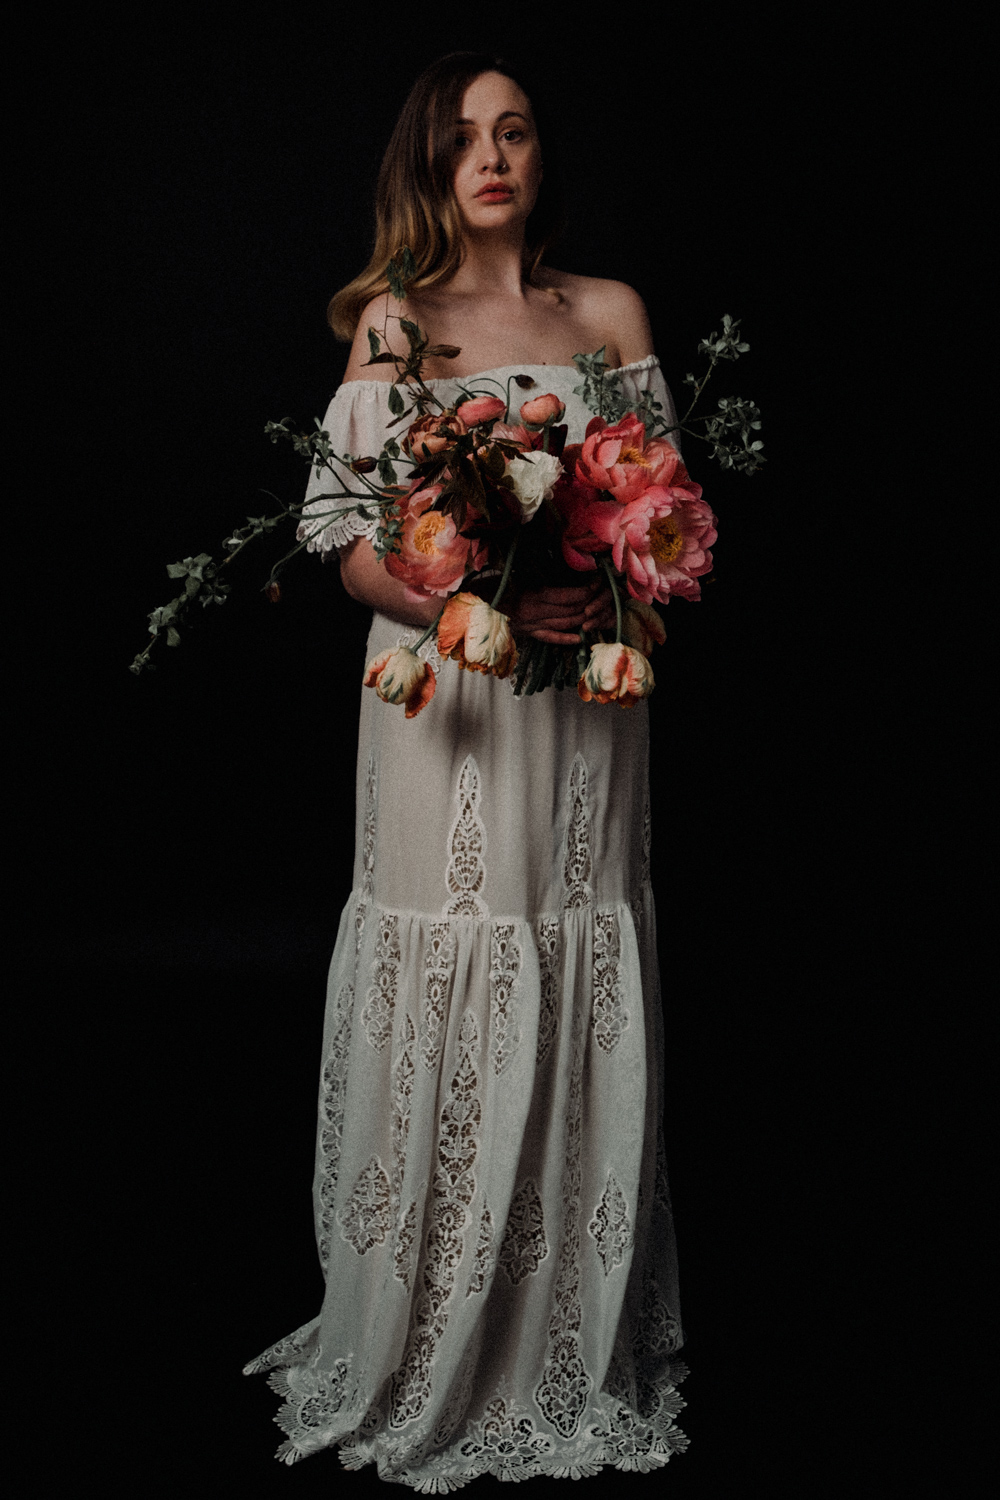 Alicia stands with the bouquet of flowers featuring Peonies, Tulips and Ranuculus' looking directly at the camera